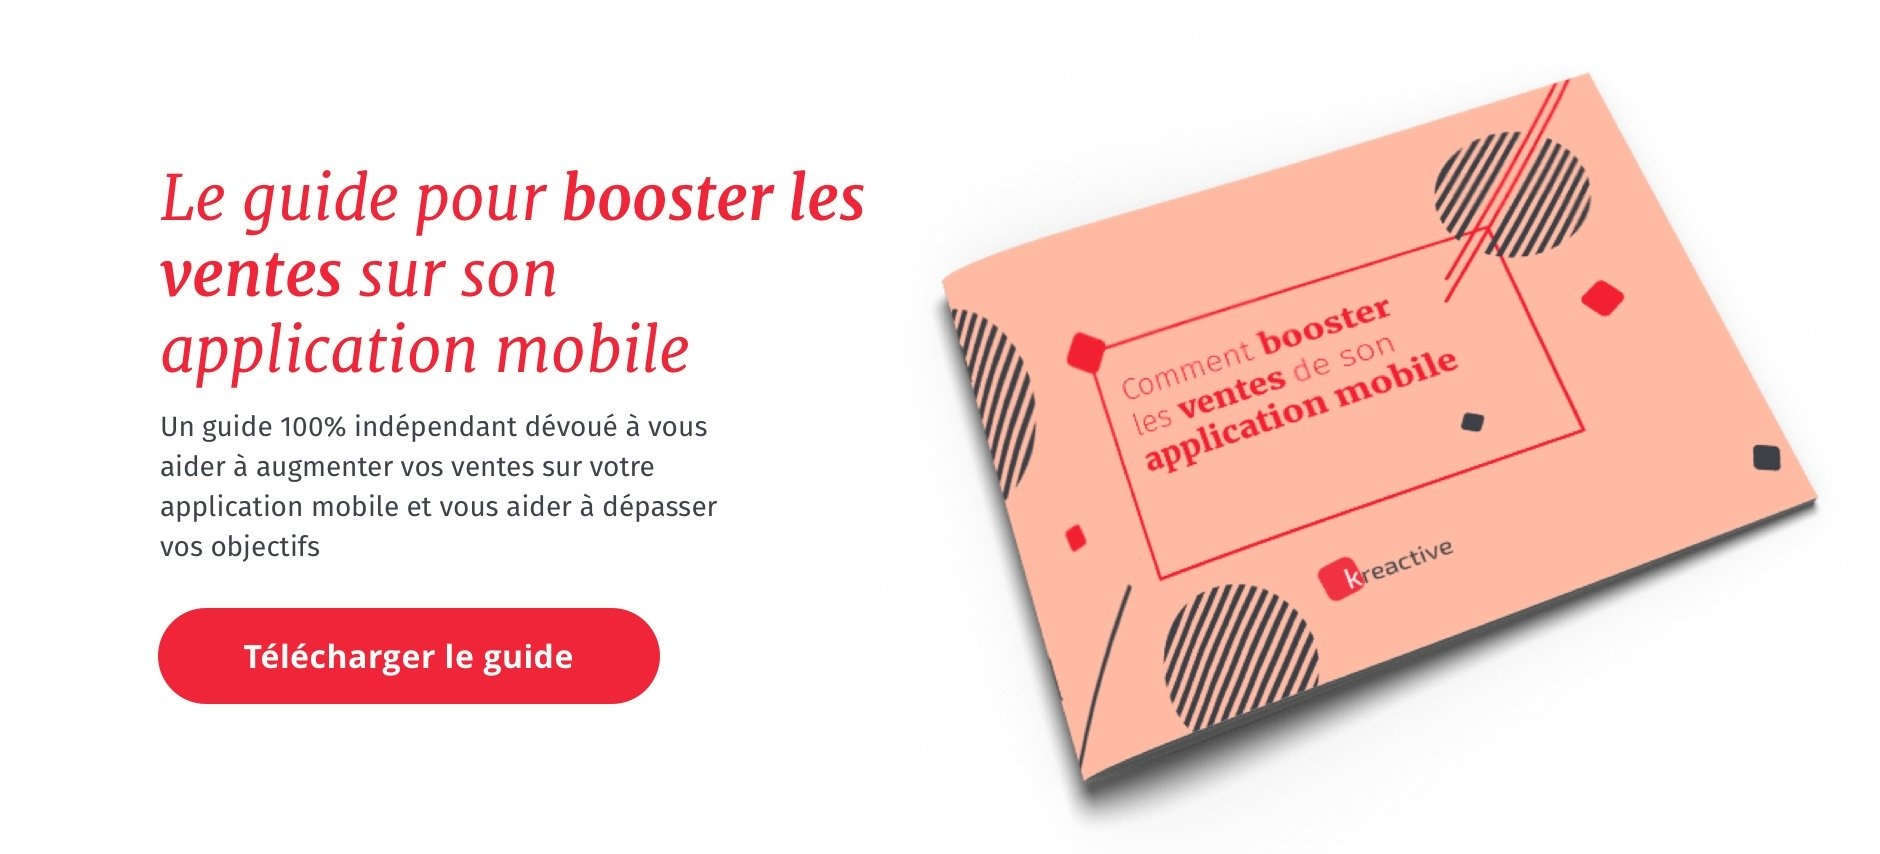 Le guide pour booster les ventes sur son application mobile